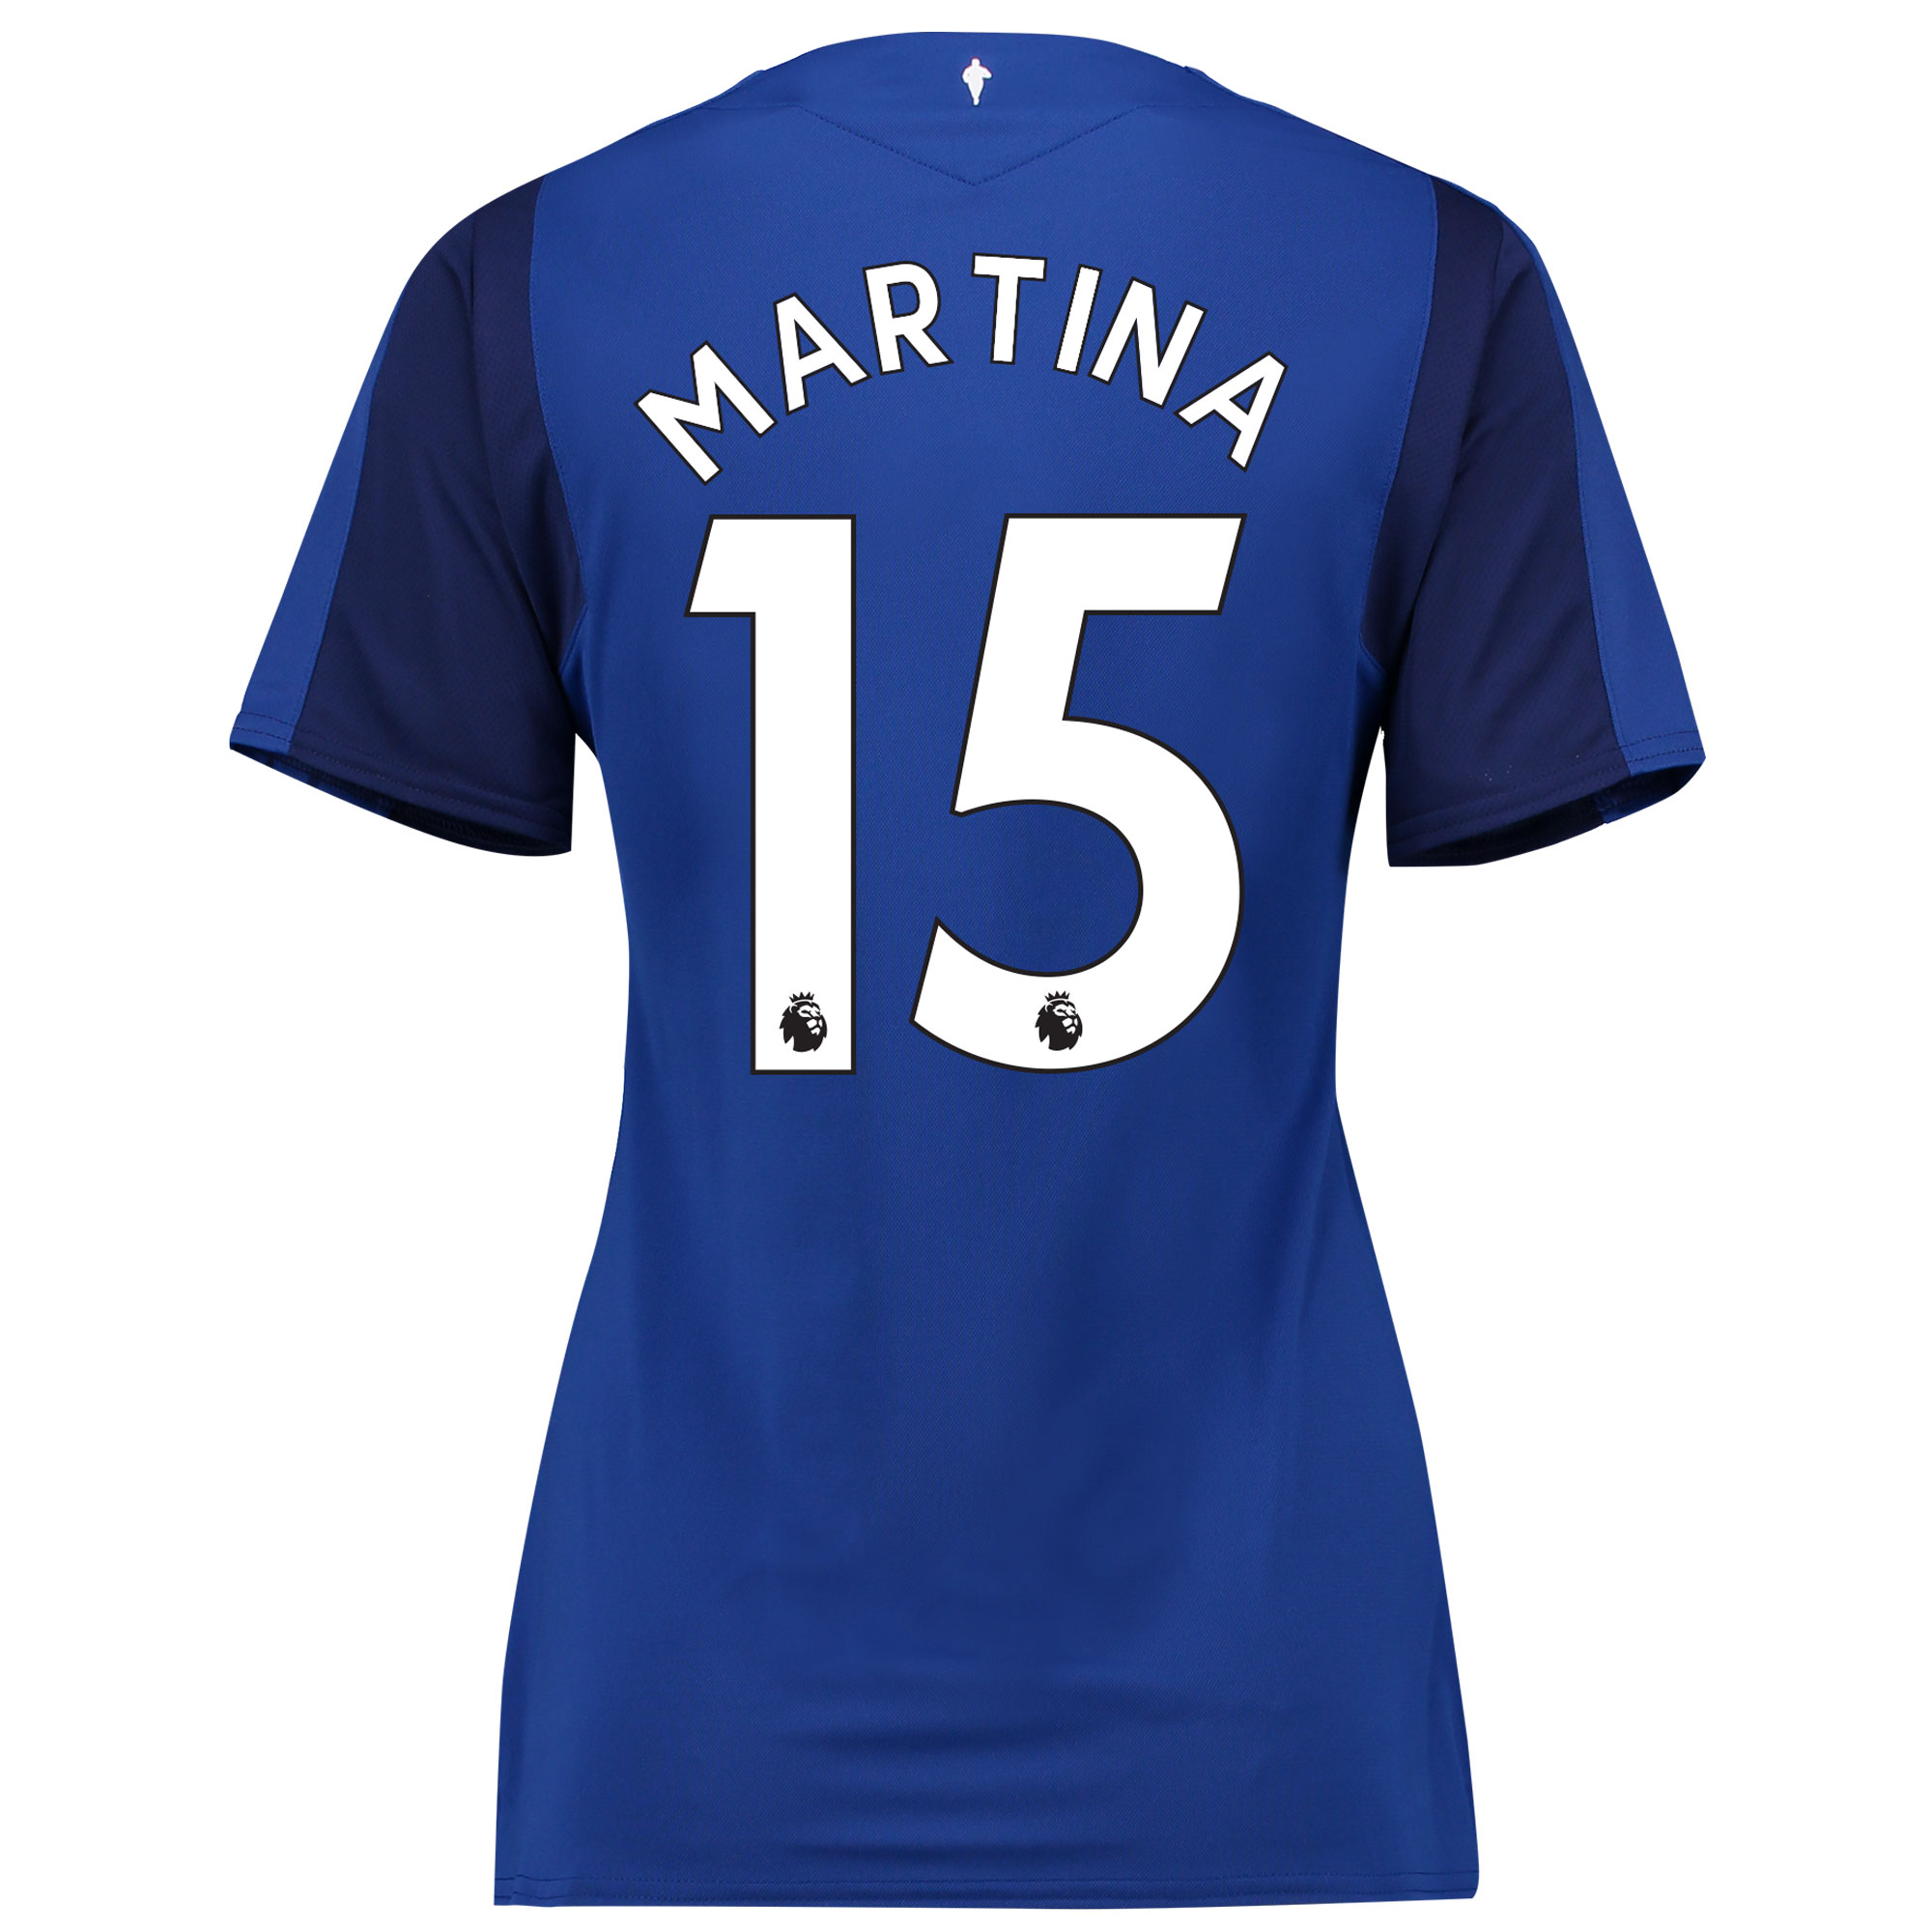 Everton Home Shirt 2017/18 - Womens with Martina 15 printing